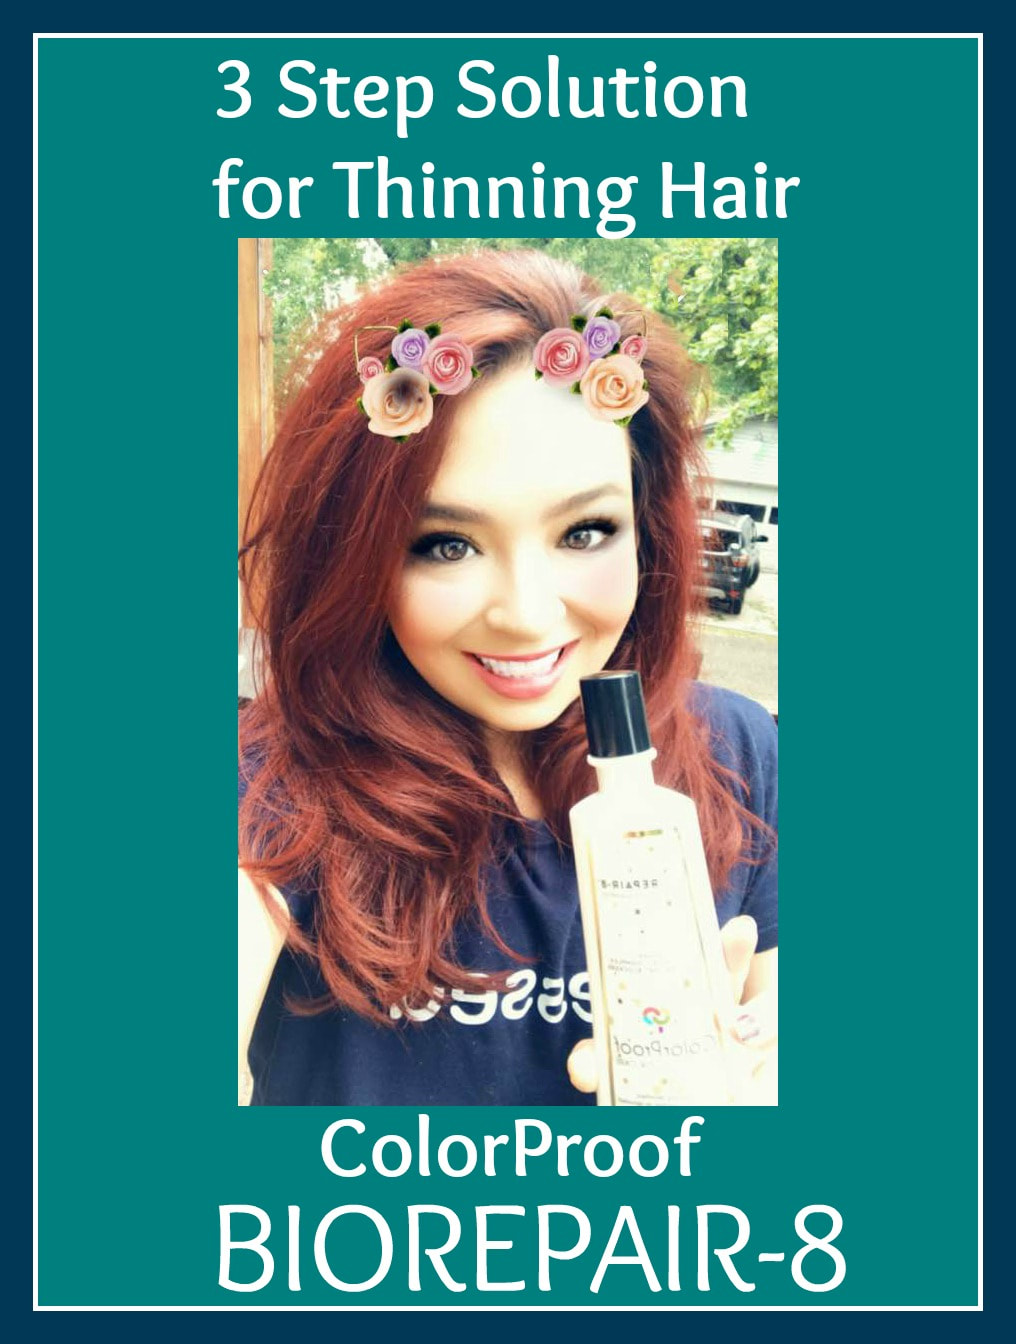 ColorProof BioRepair-8 3 Step Solution for Thinning Hair #Partner